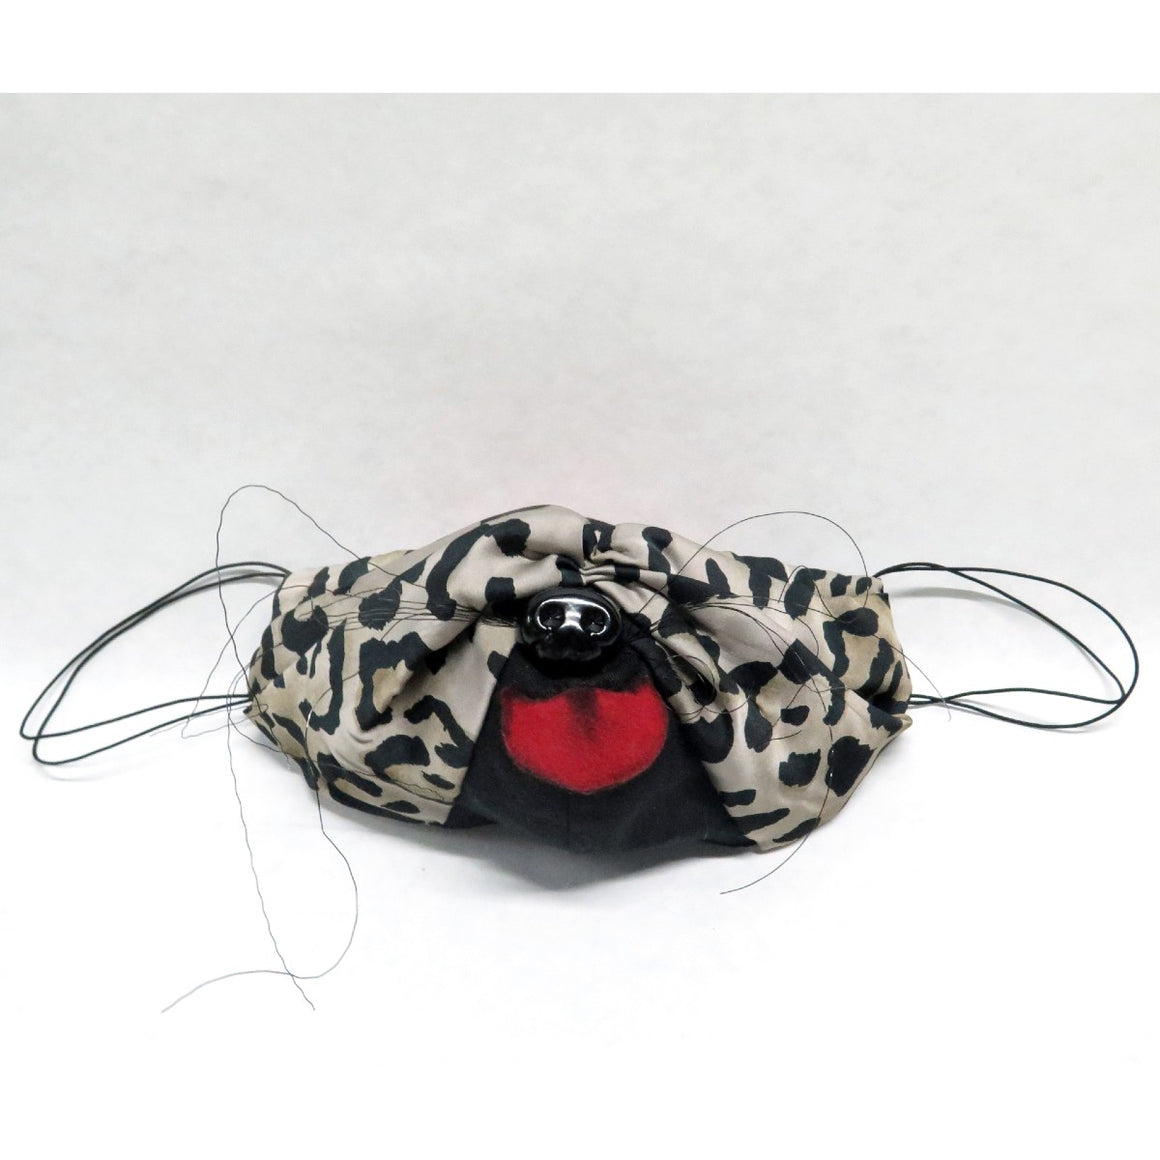 Mask featuring leopard print and black fabric which includes wire whiskers, pink fabric made to look like a tongue and black plastic dog nose